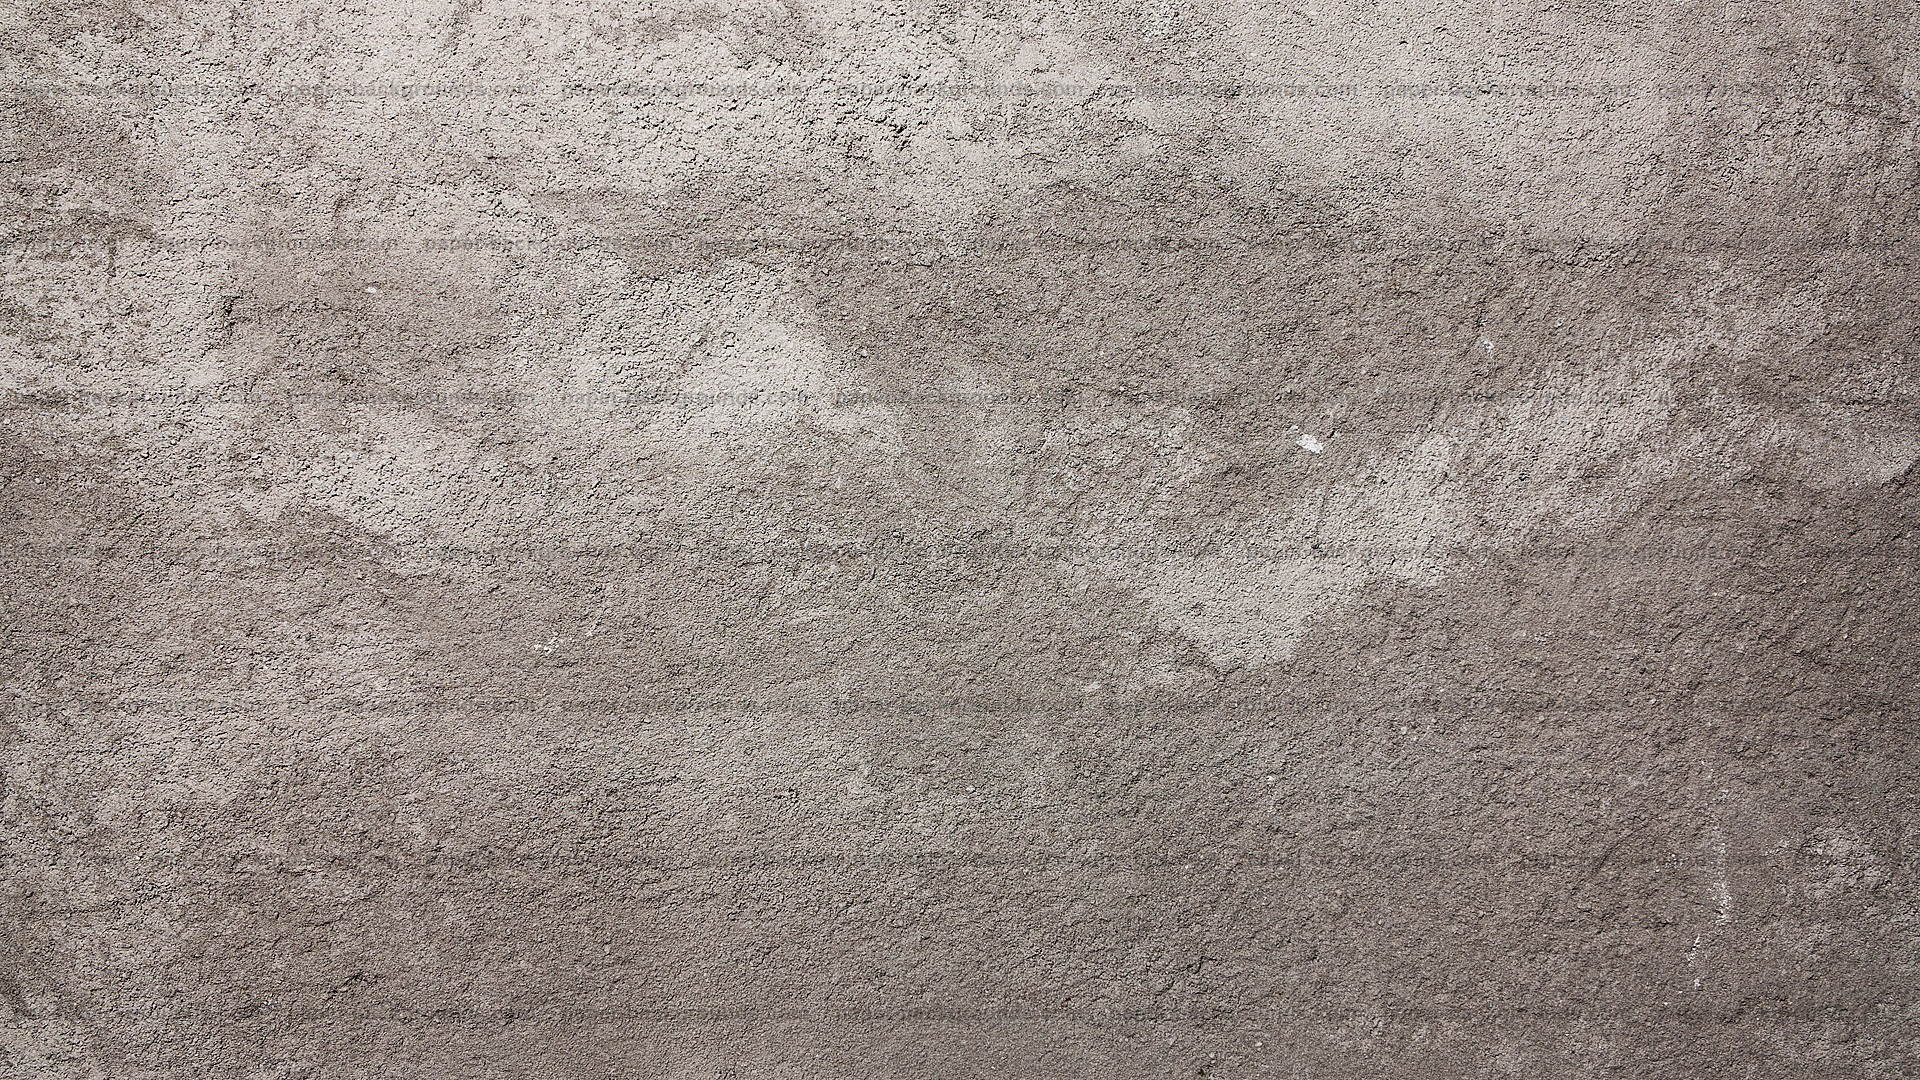 Vintage Concrete Wall Background Texture HD